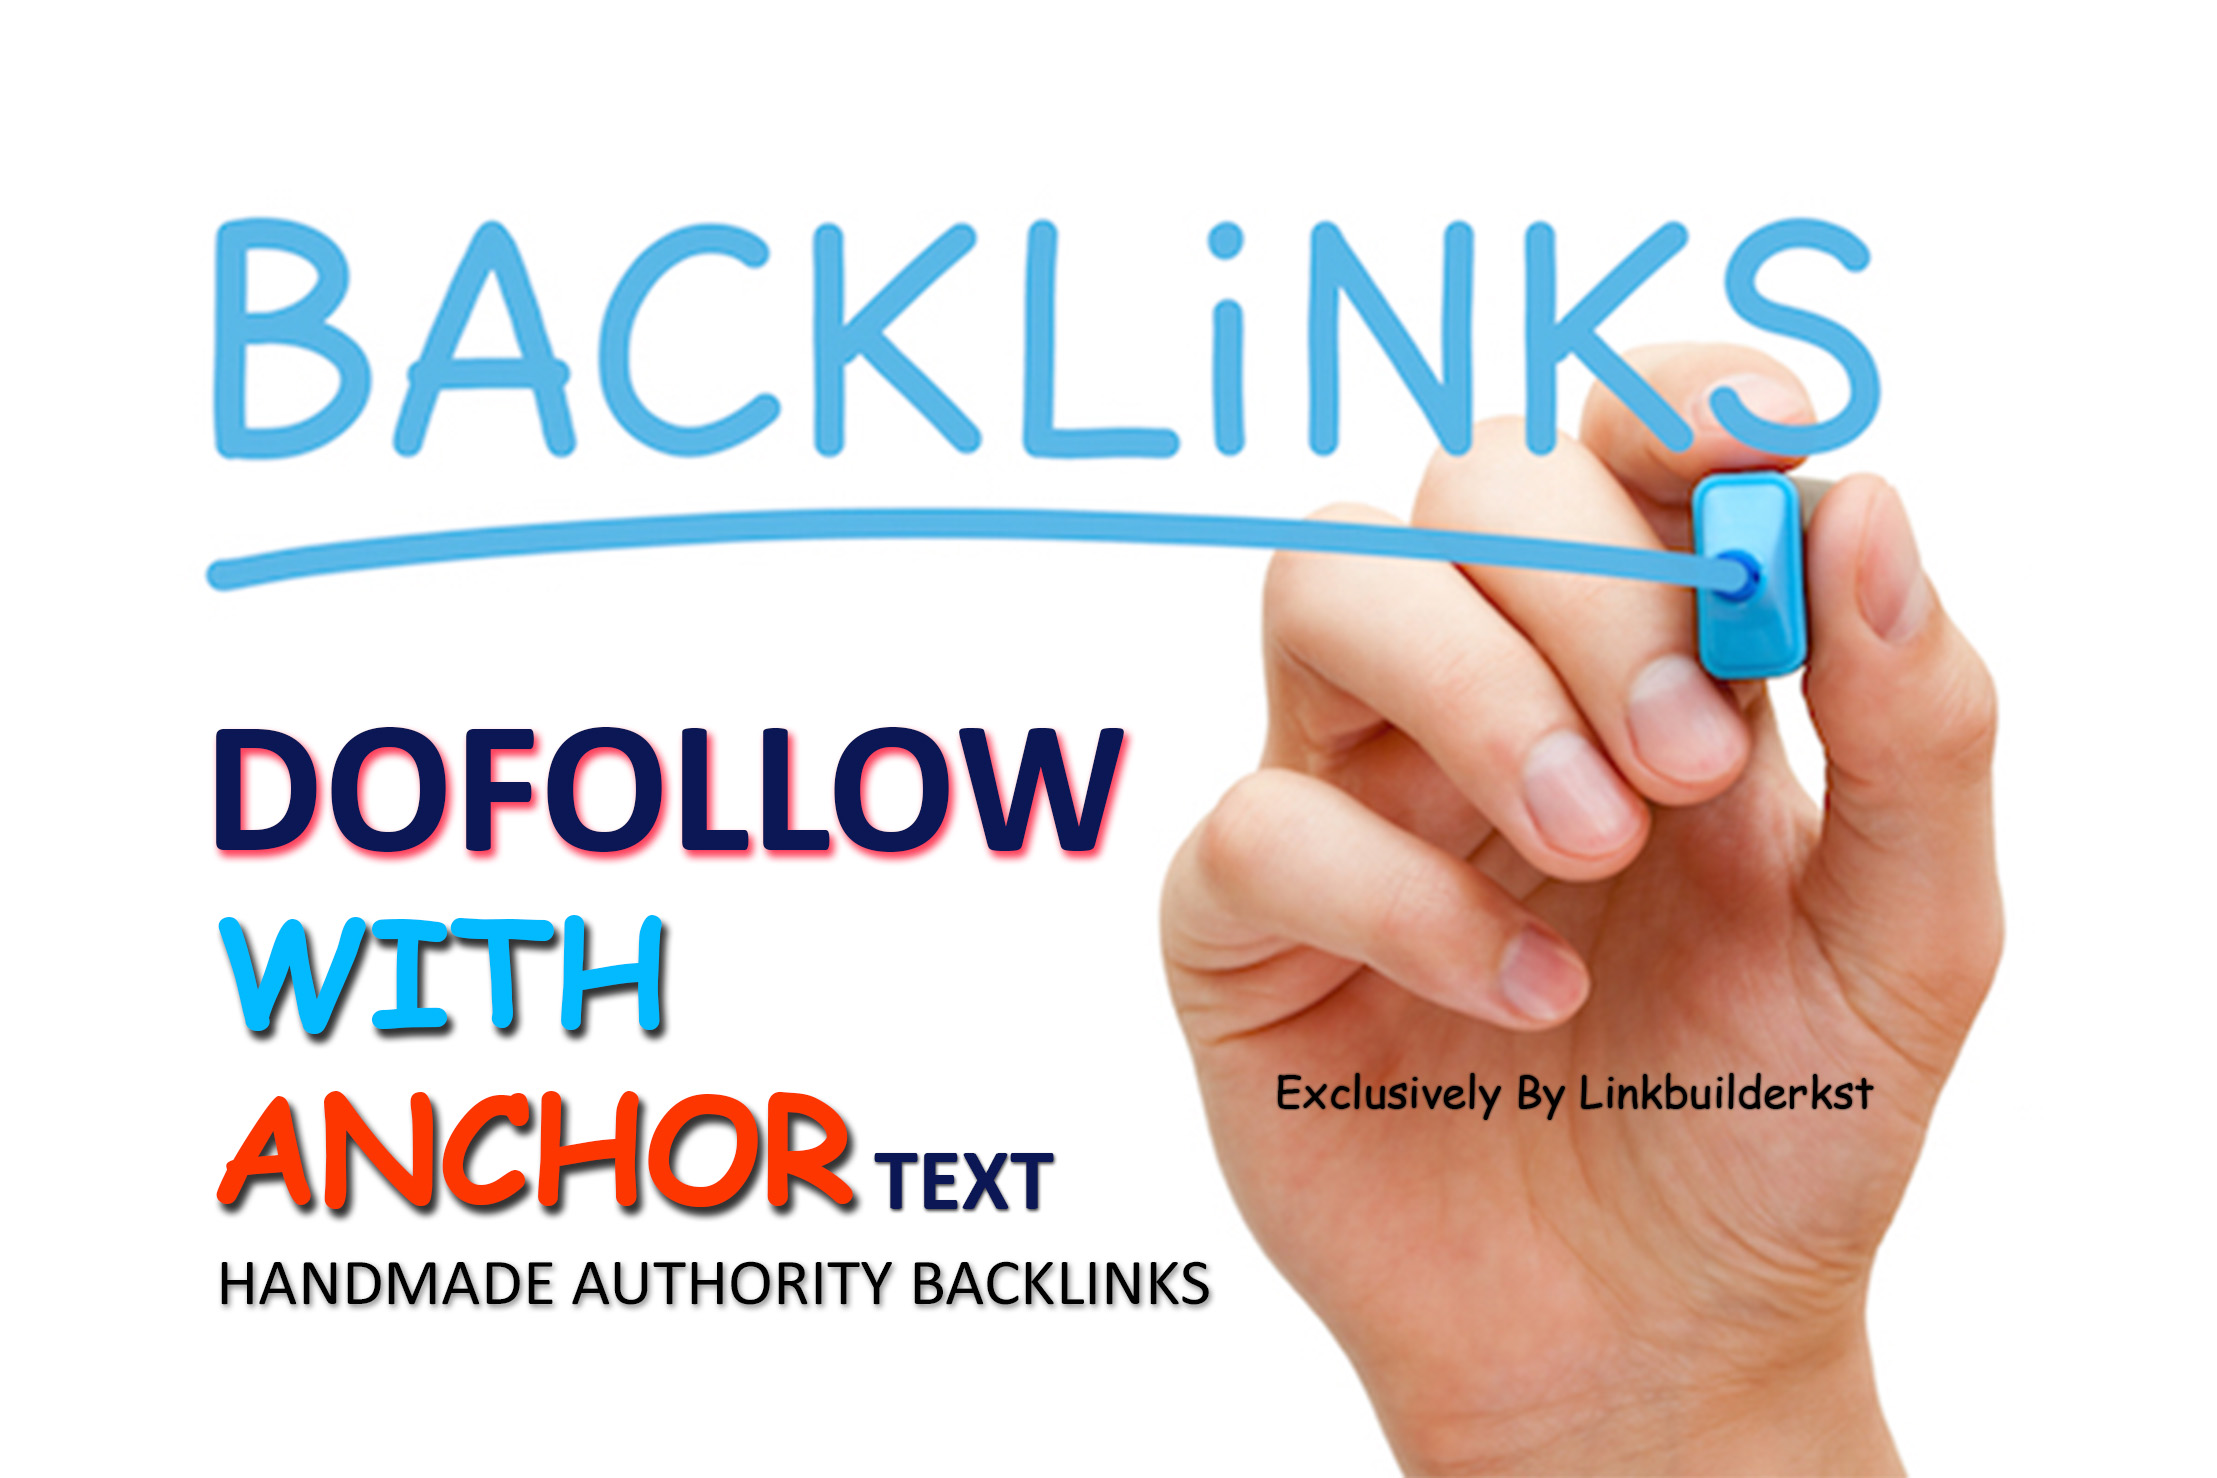 30 SEO Backlinks - Dofollow With Anchor Text